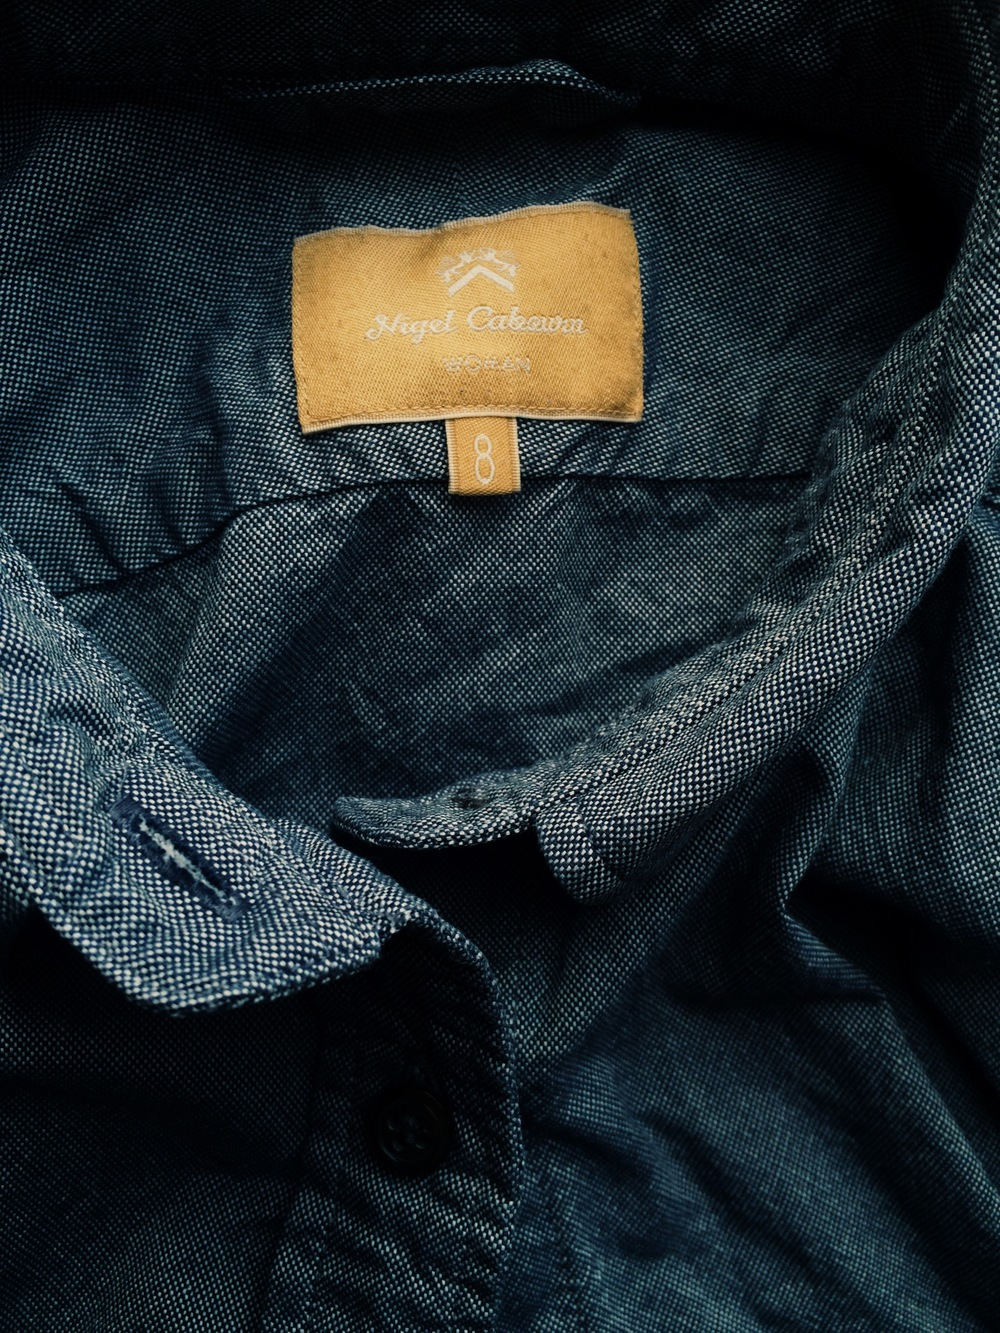 Japanese Cotton Oxford indigo shirt, from Nigel Cabourn Woman, Mainline collection